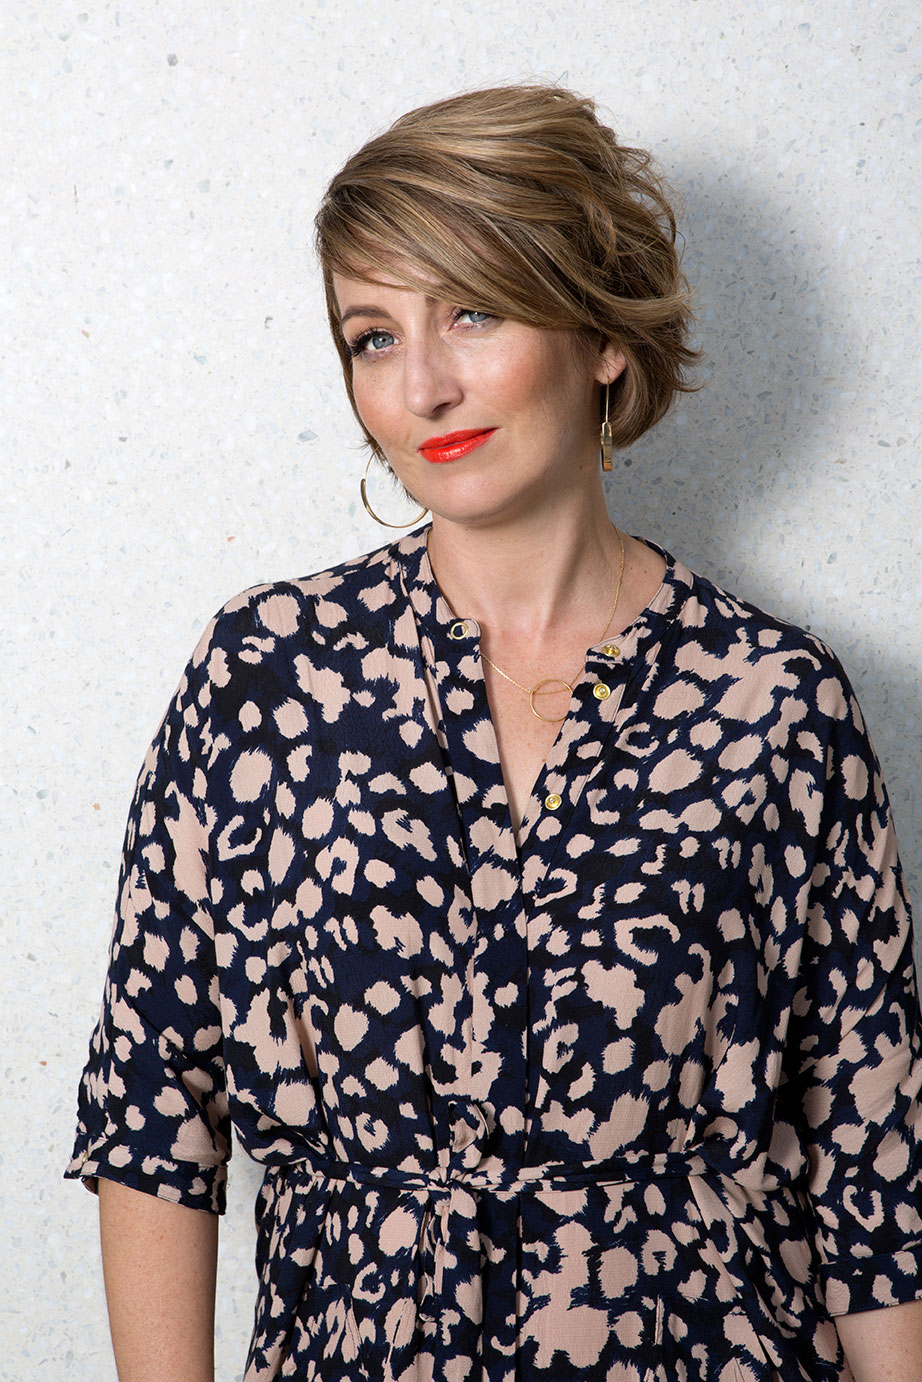 12: Amanda Whitley from HerCanberra on forging your own path